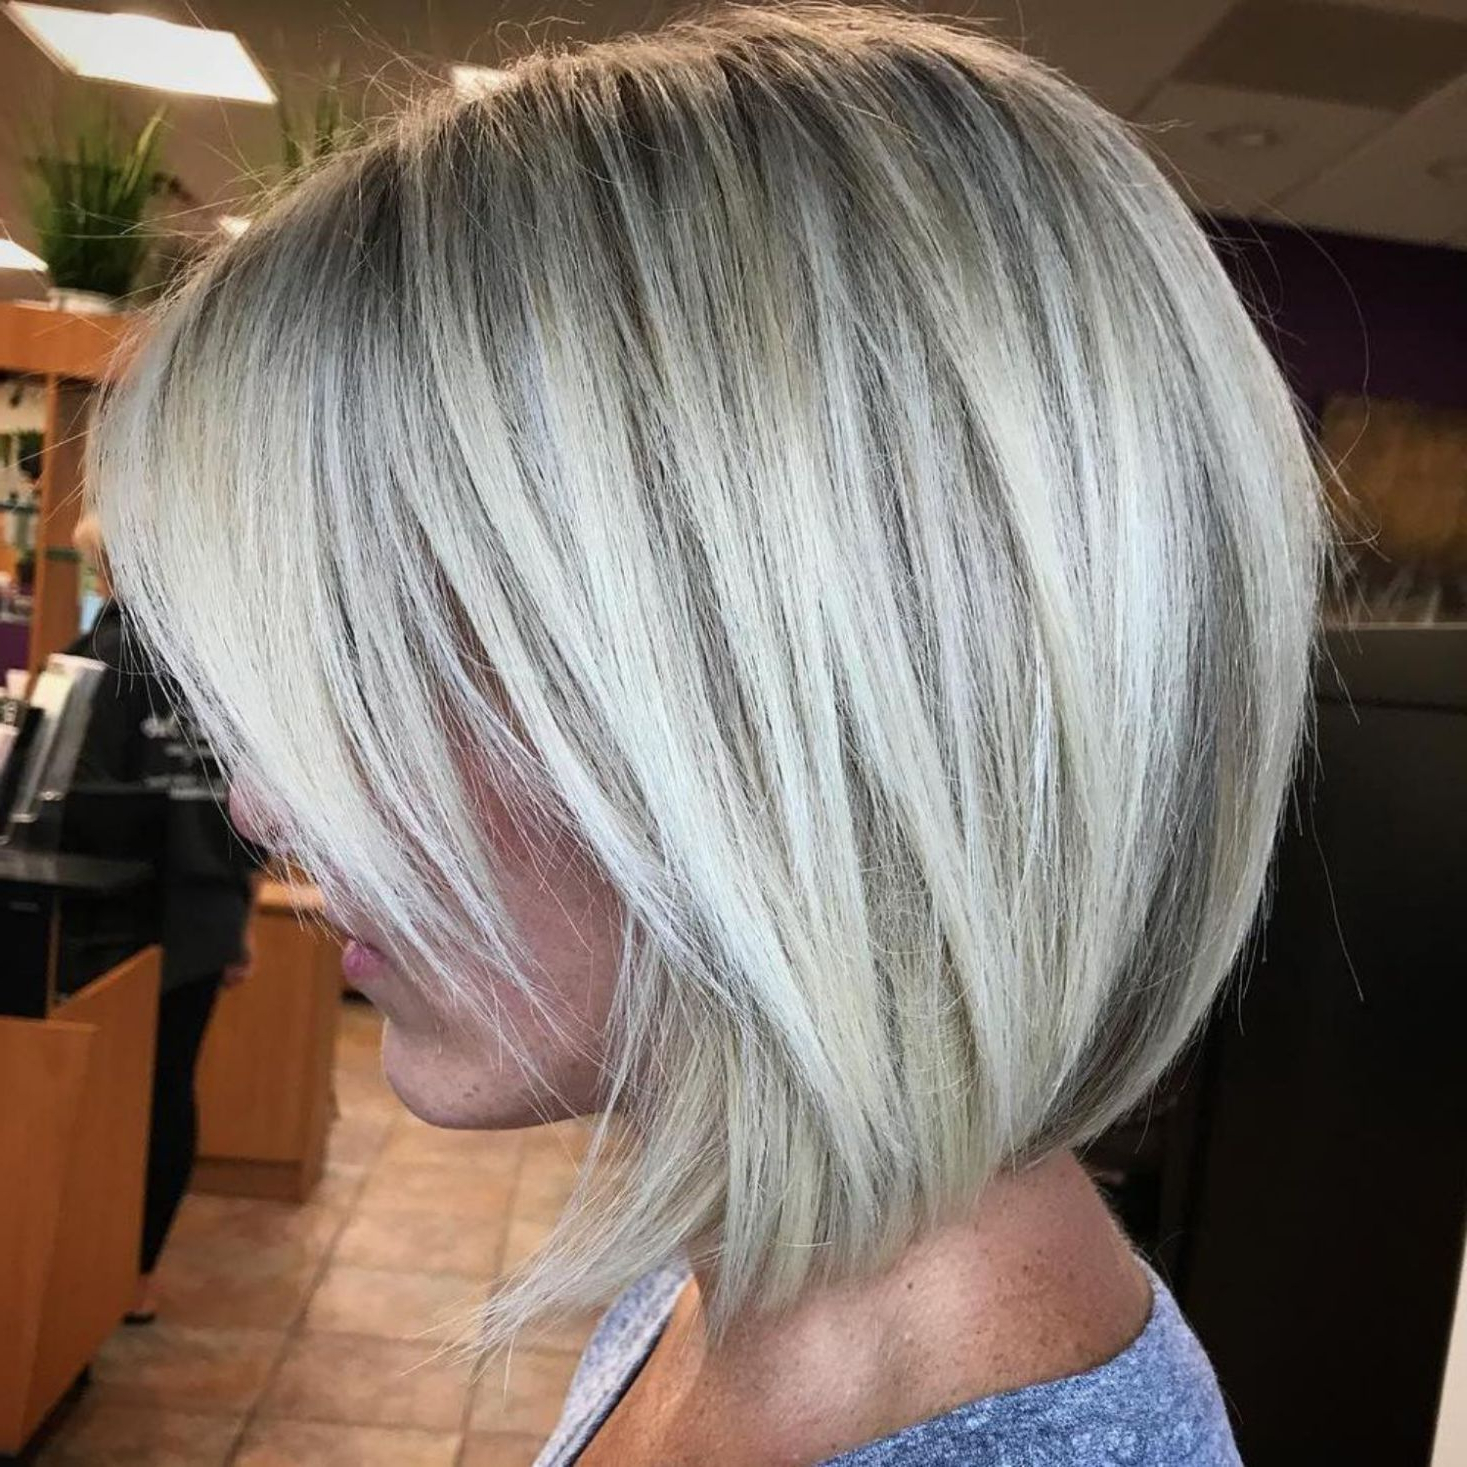 60 Beautiful And Convenient Medium Bob Hairstyles In 2019 With Regard To Well Known Razored Gray Bob Hairstyles With Bangs (View 5 of 20)